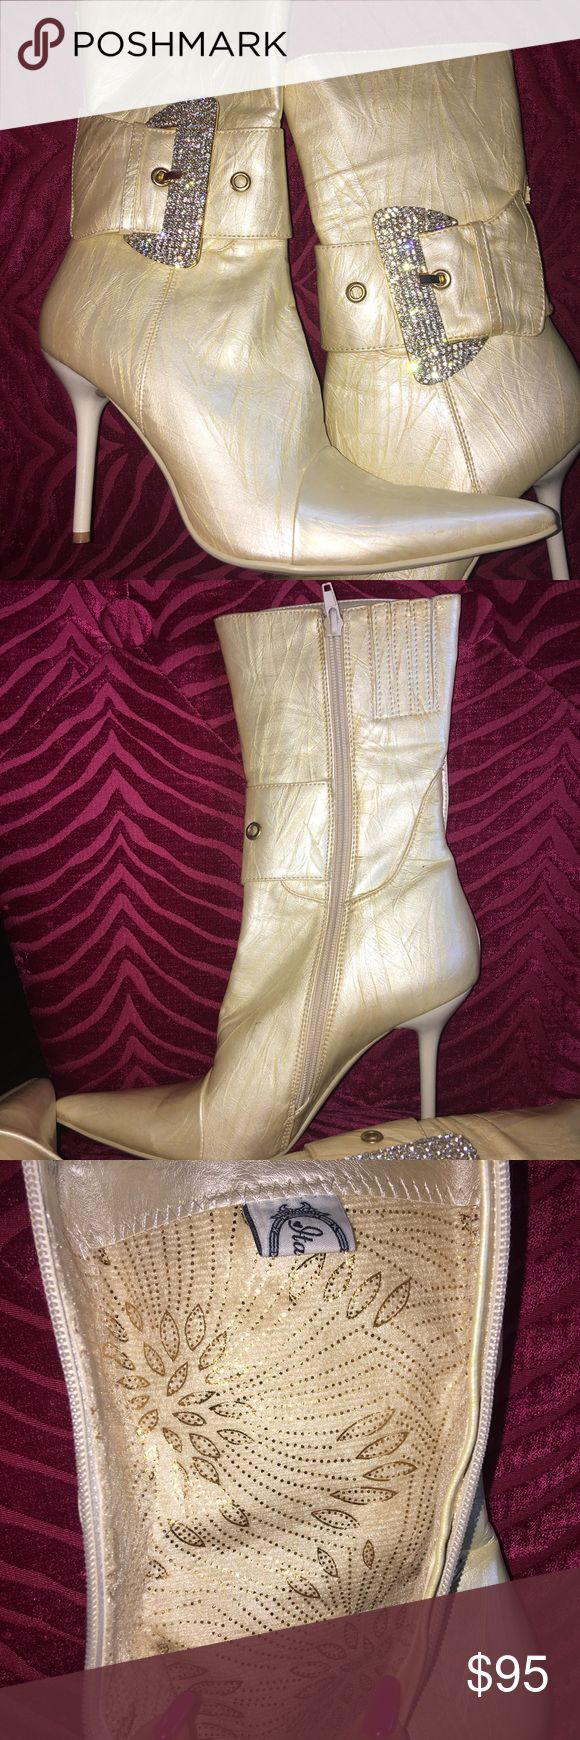 Boots 8.5 womens Brand New Boutique Style Boots Pearl white/Off white/Cream Shine Size 8.5 Has slight imperfections  Zip up on the side Italina Shoes Ankle Boots & Booties